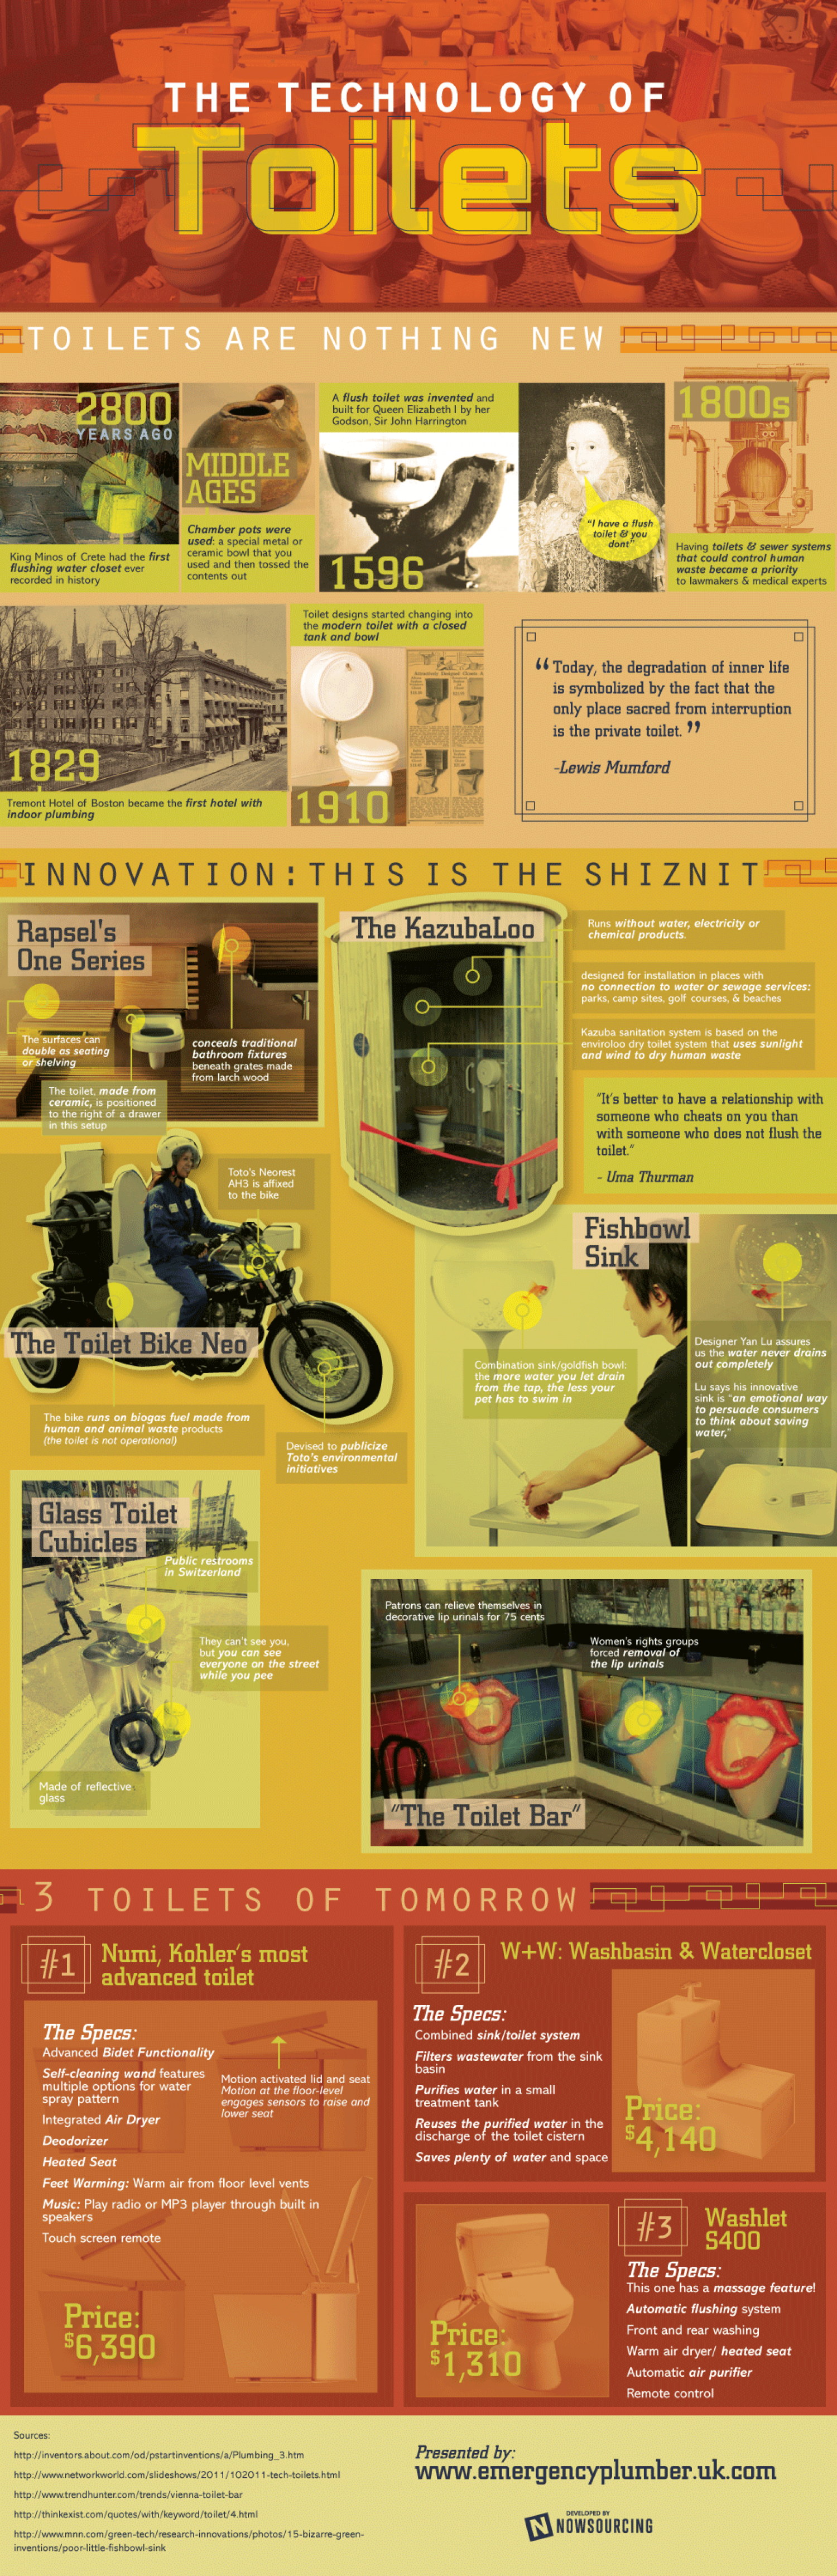 The Technology of Toilets Infographic